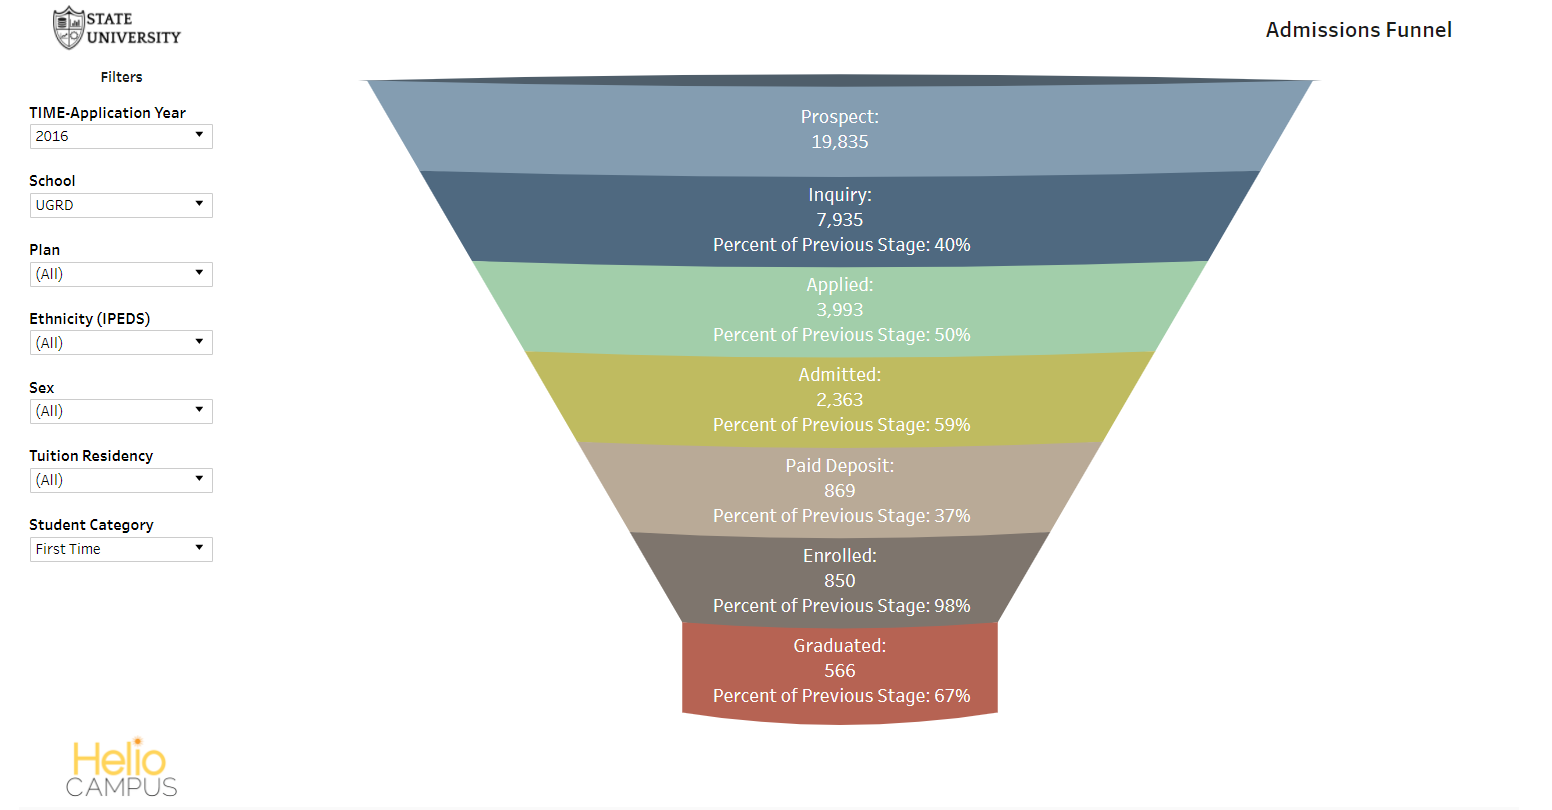 Admissions Funnel